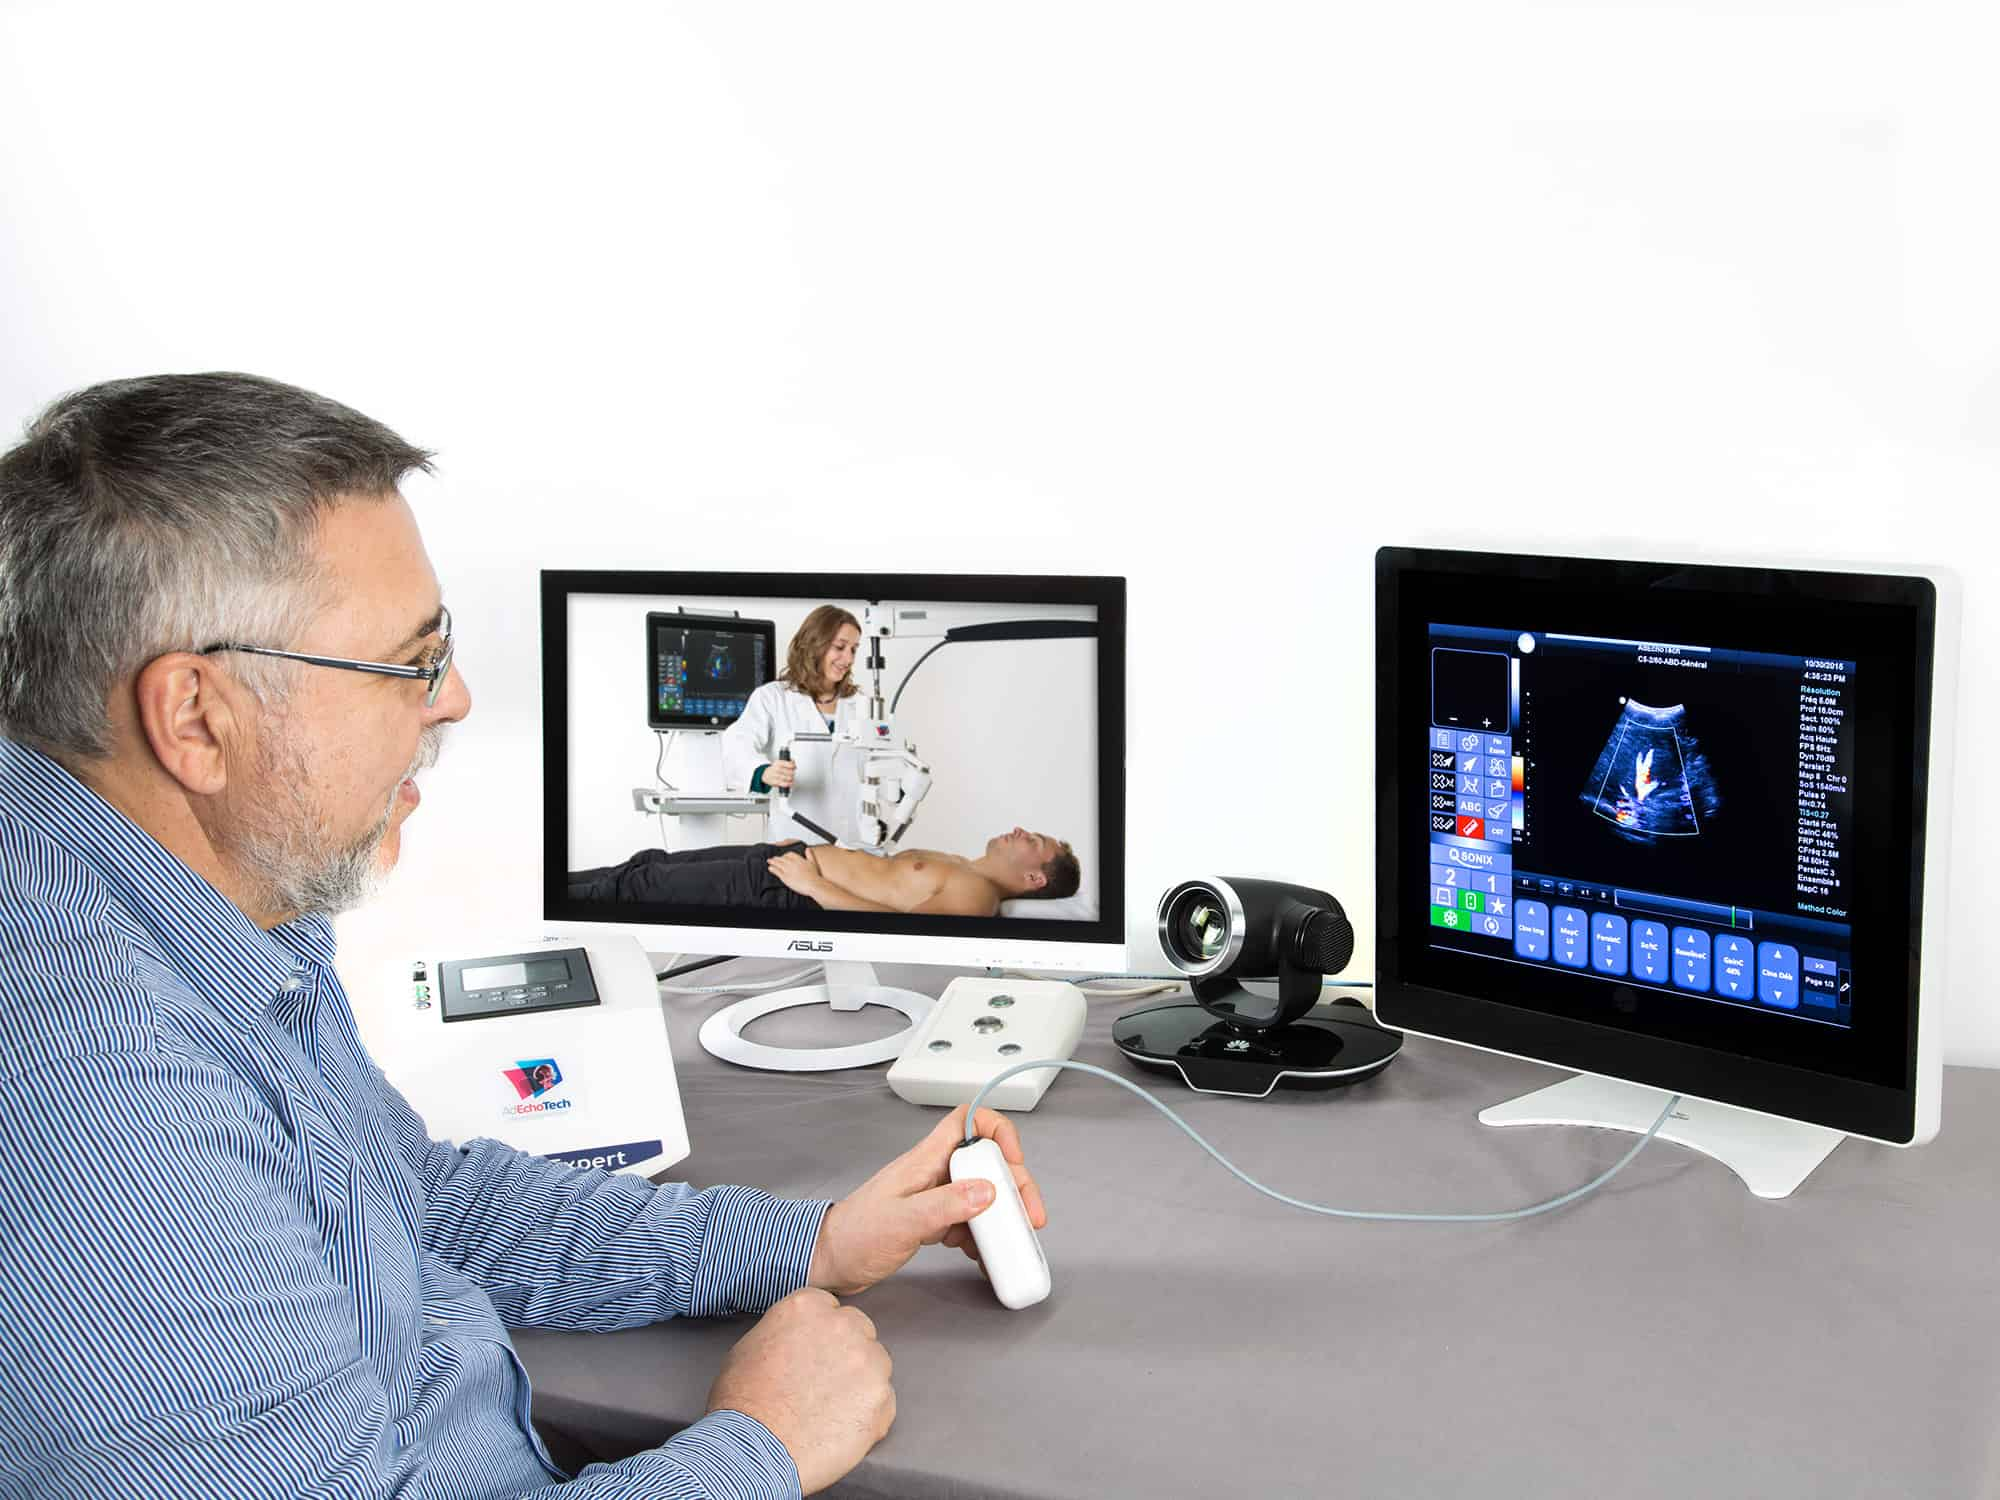 Experts can operate the equipment remotely